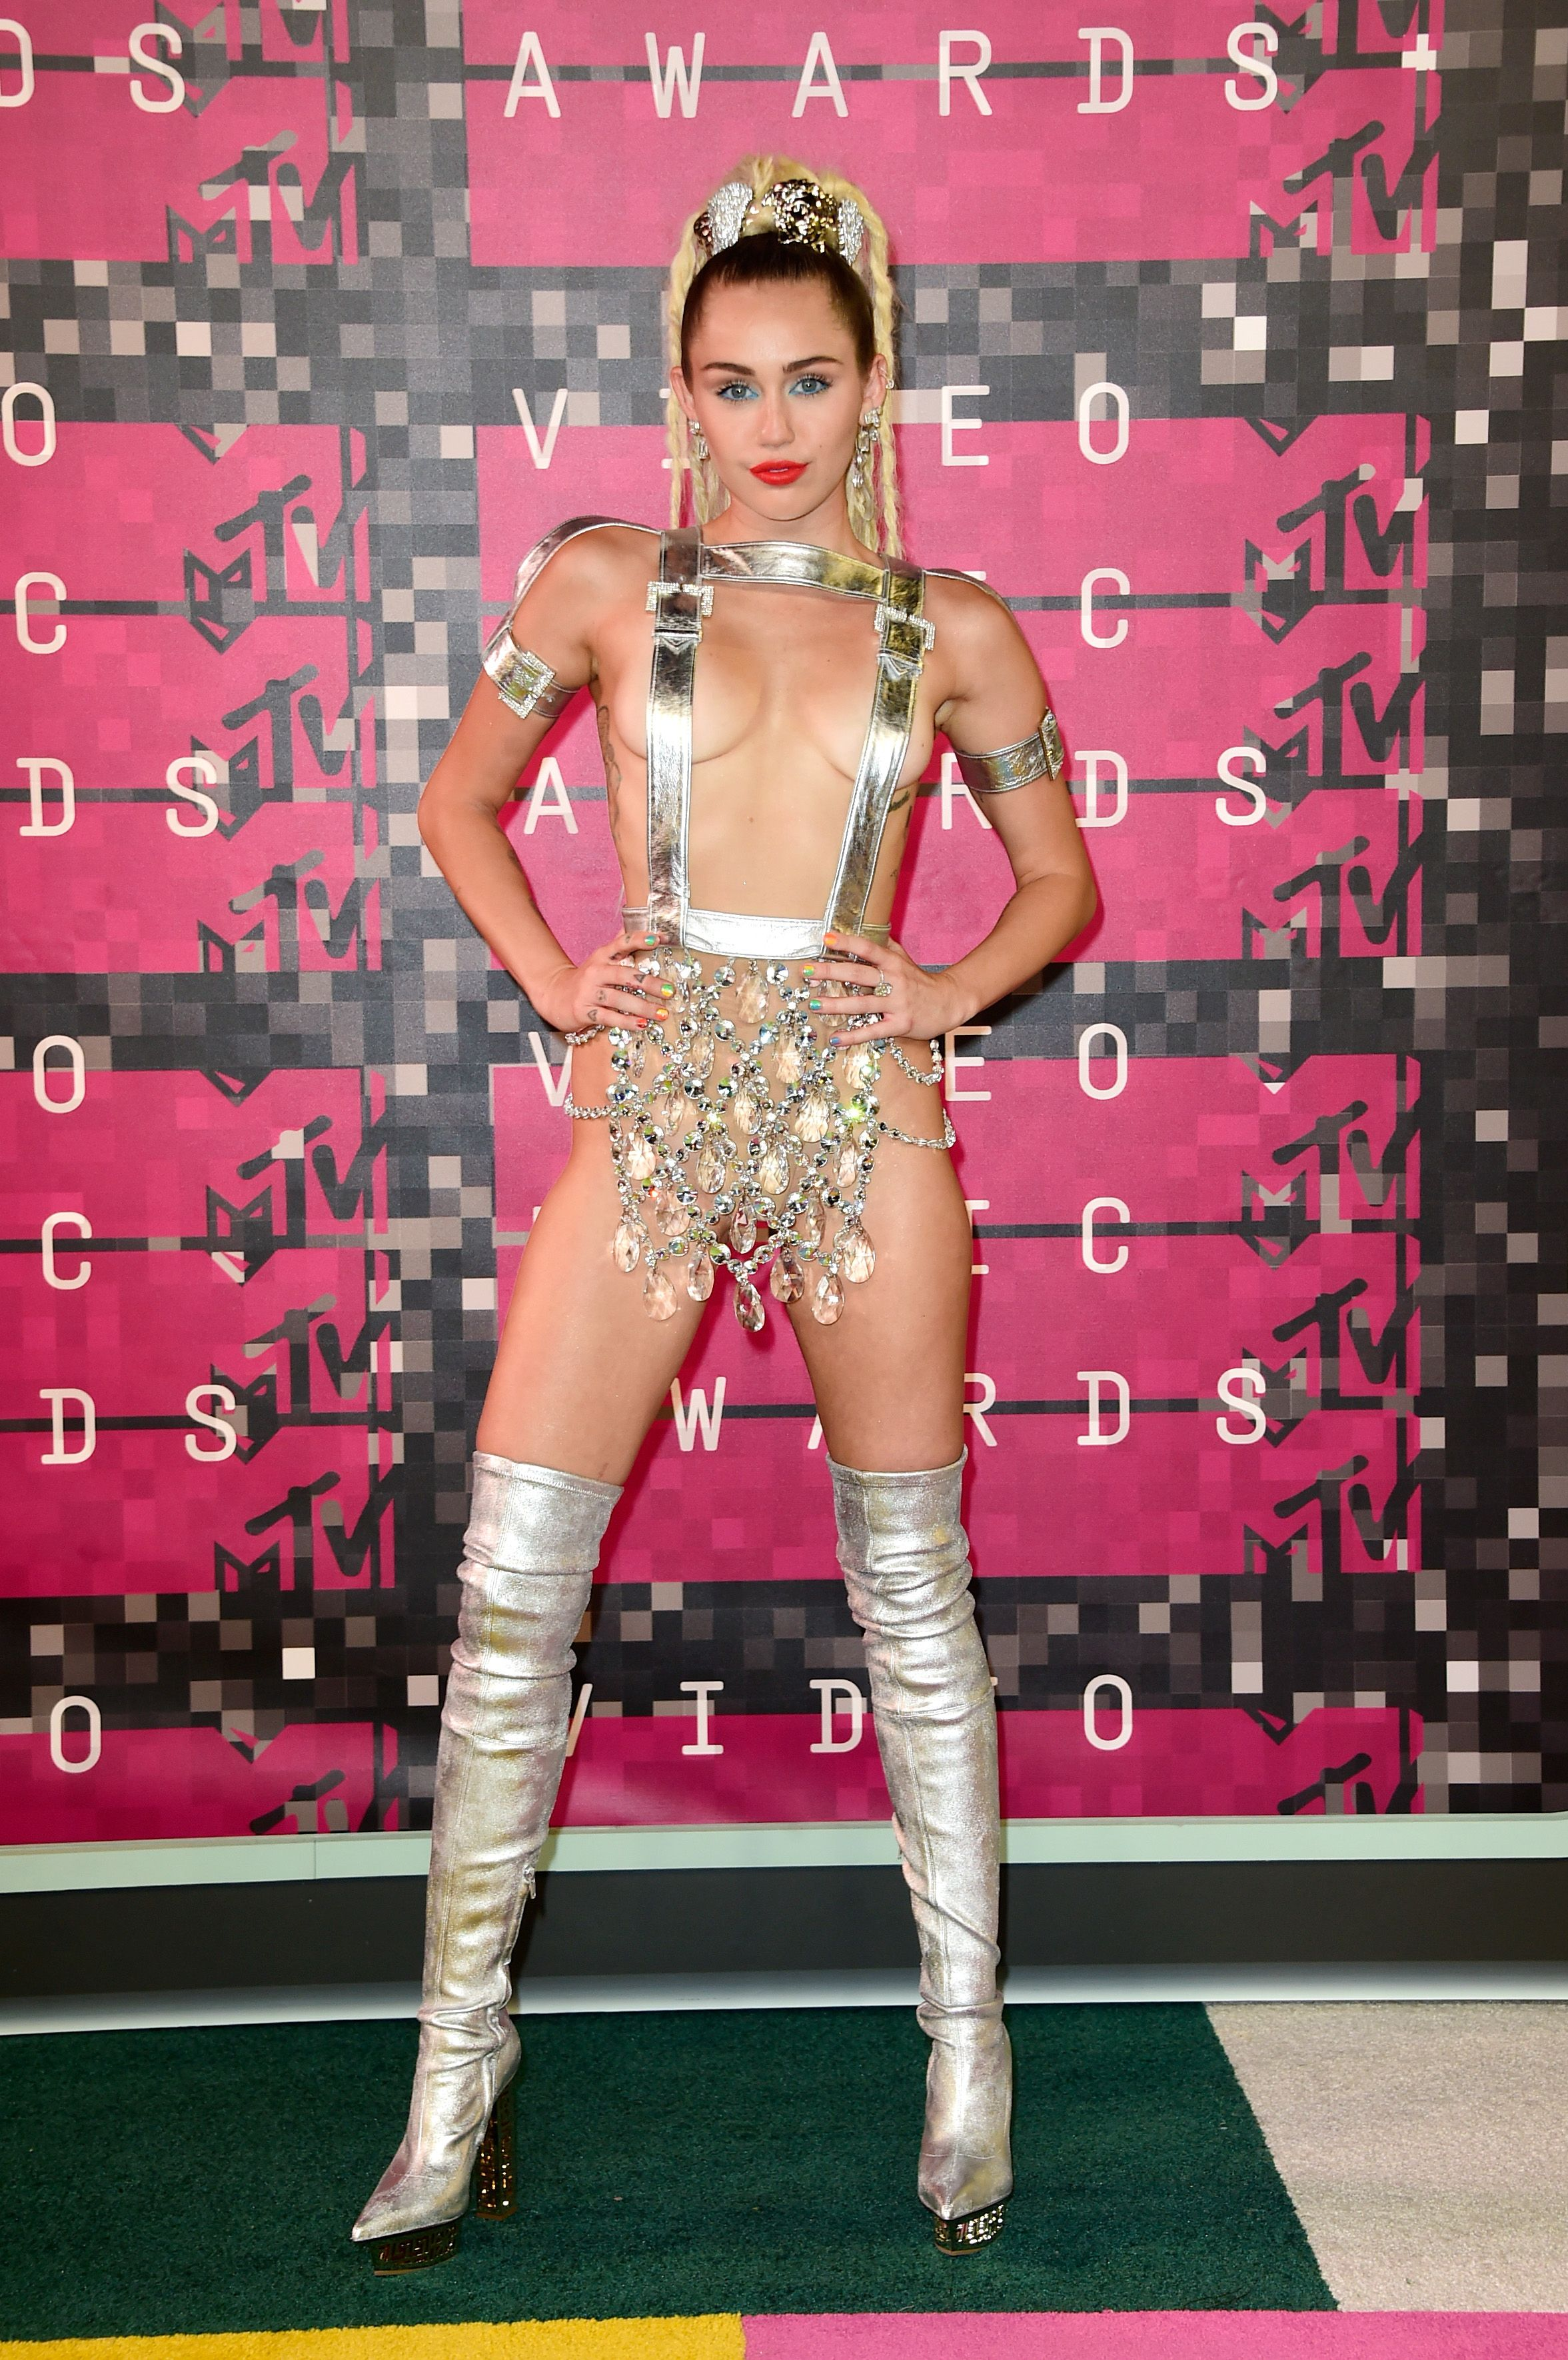 LOS ANGELES, CA - AUGUST 30: Host Miley Cyrus attends the 2015 MTV Video Music Awards at Microsoft Theater on August 30, 2015 in Los Angeles, California. (Photo by Frazer Harrison/Getty Images)